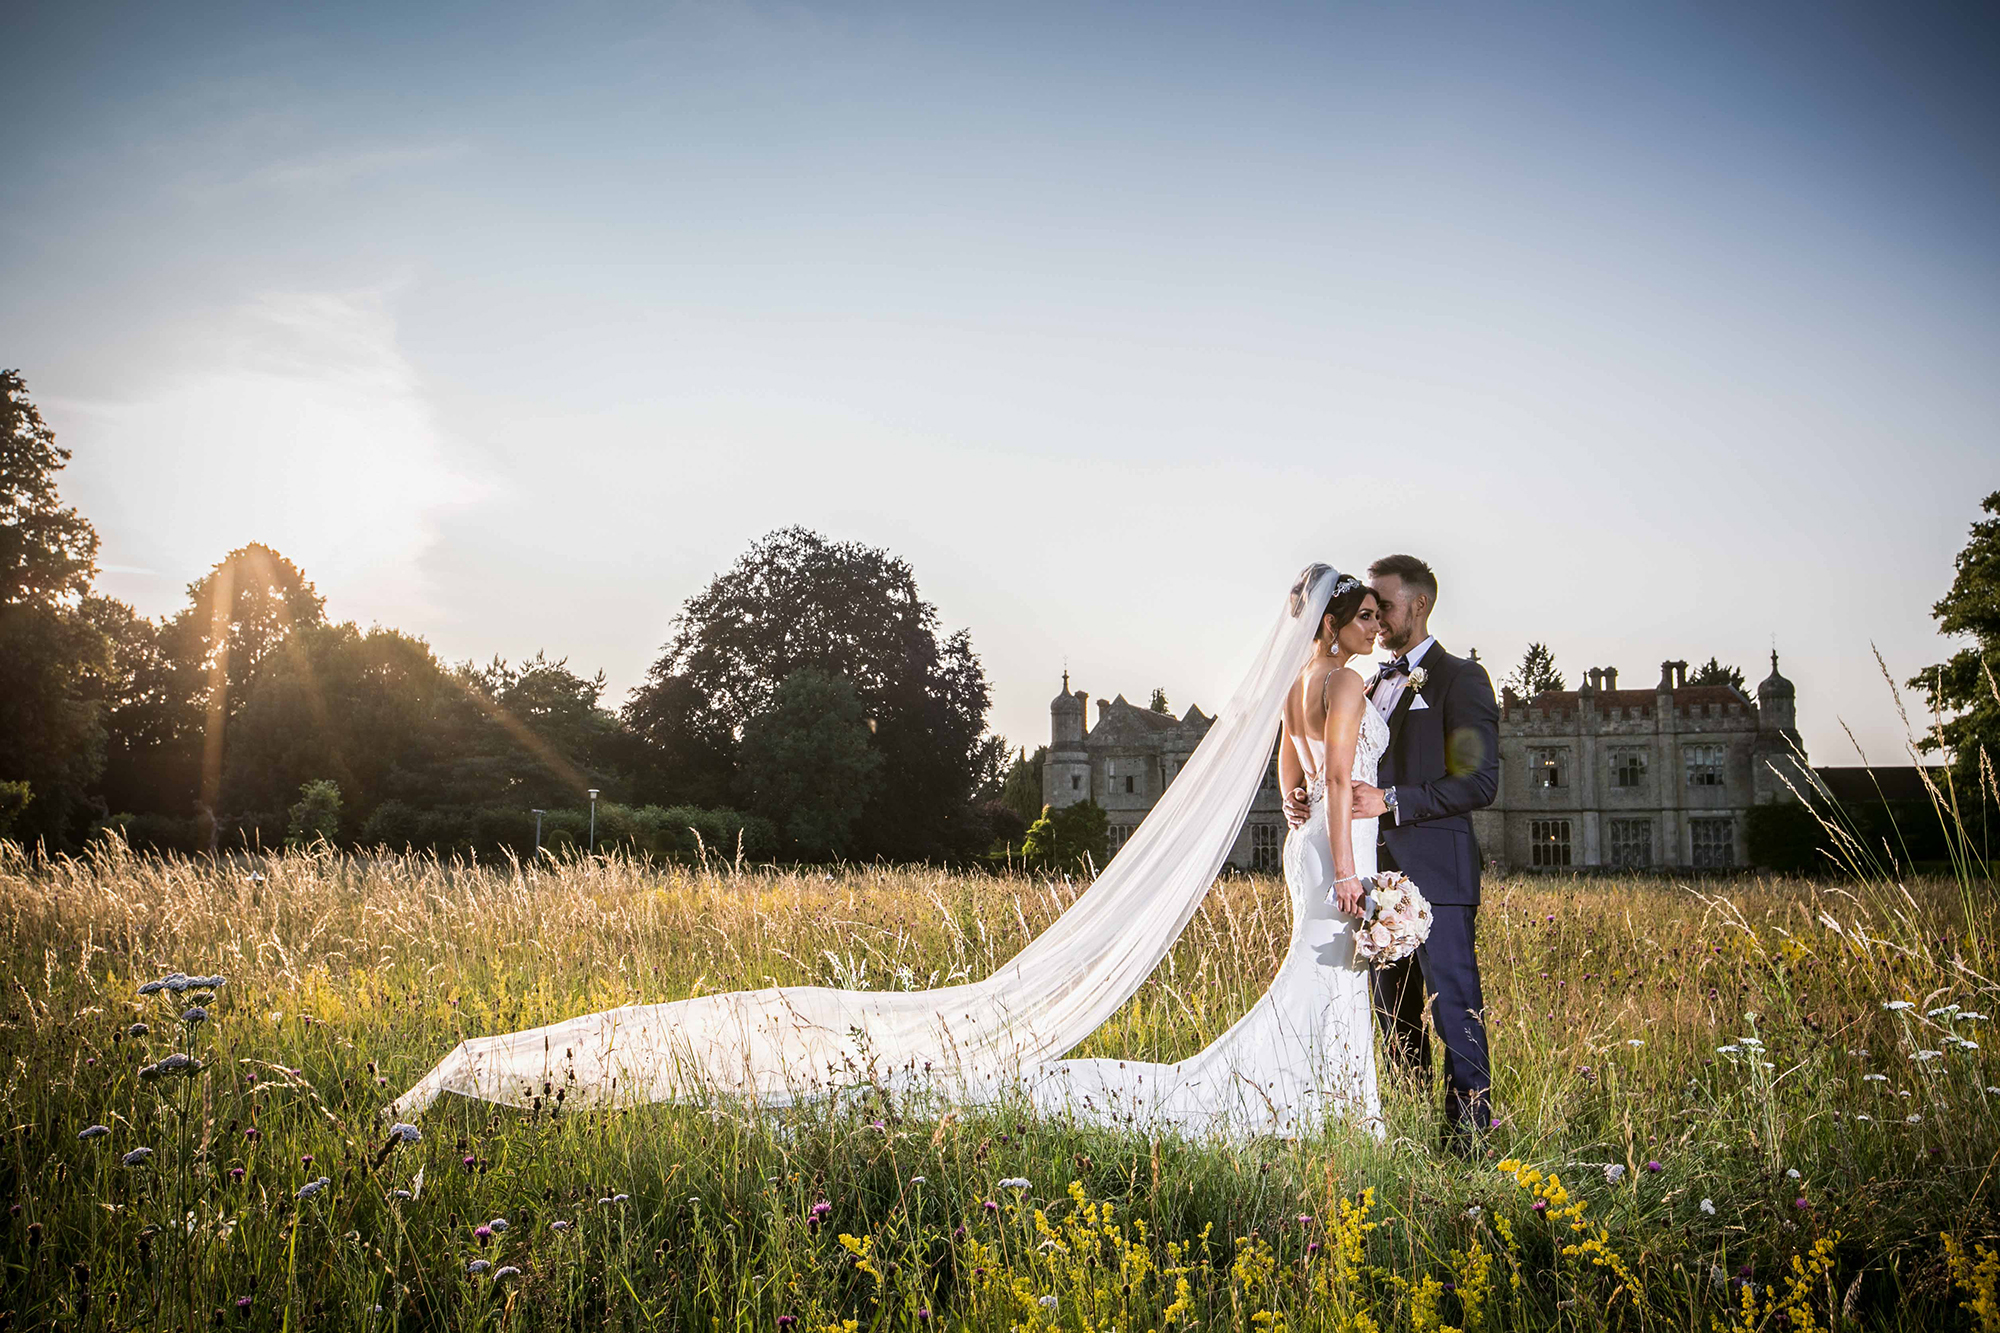 Newly married couple embrace in the meadow gardens at Hengrave Hall